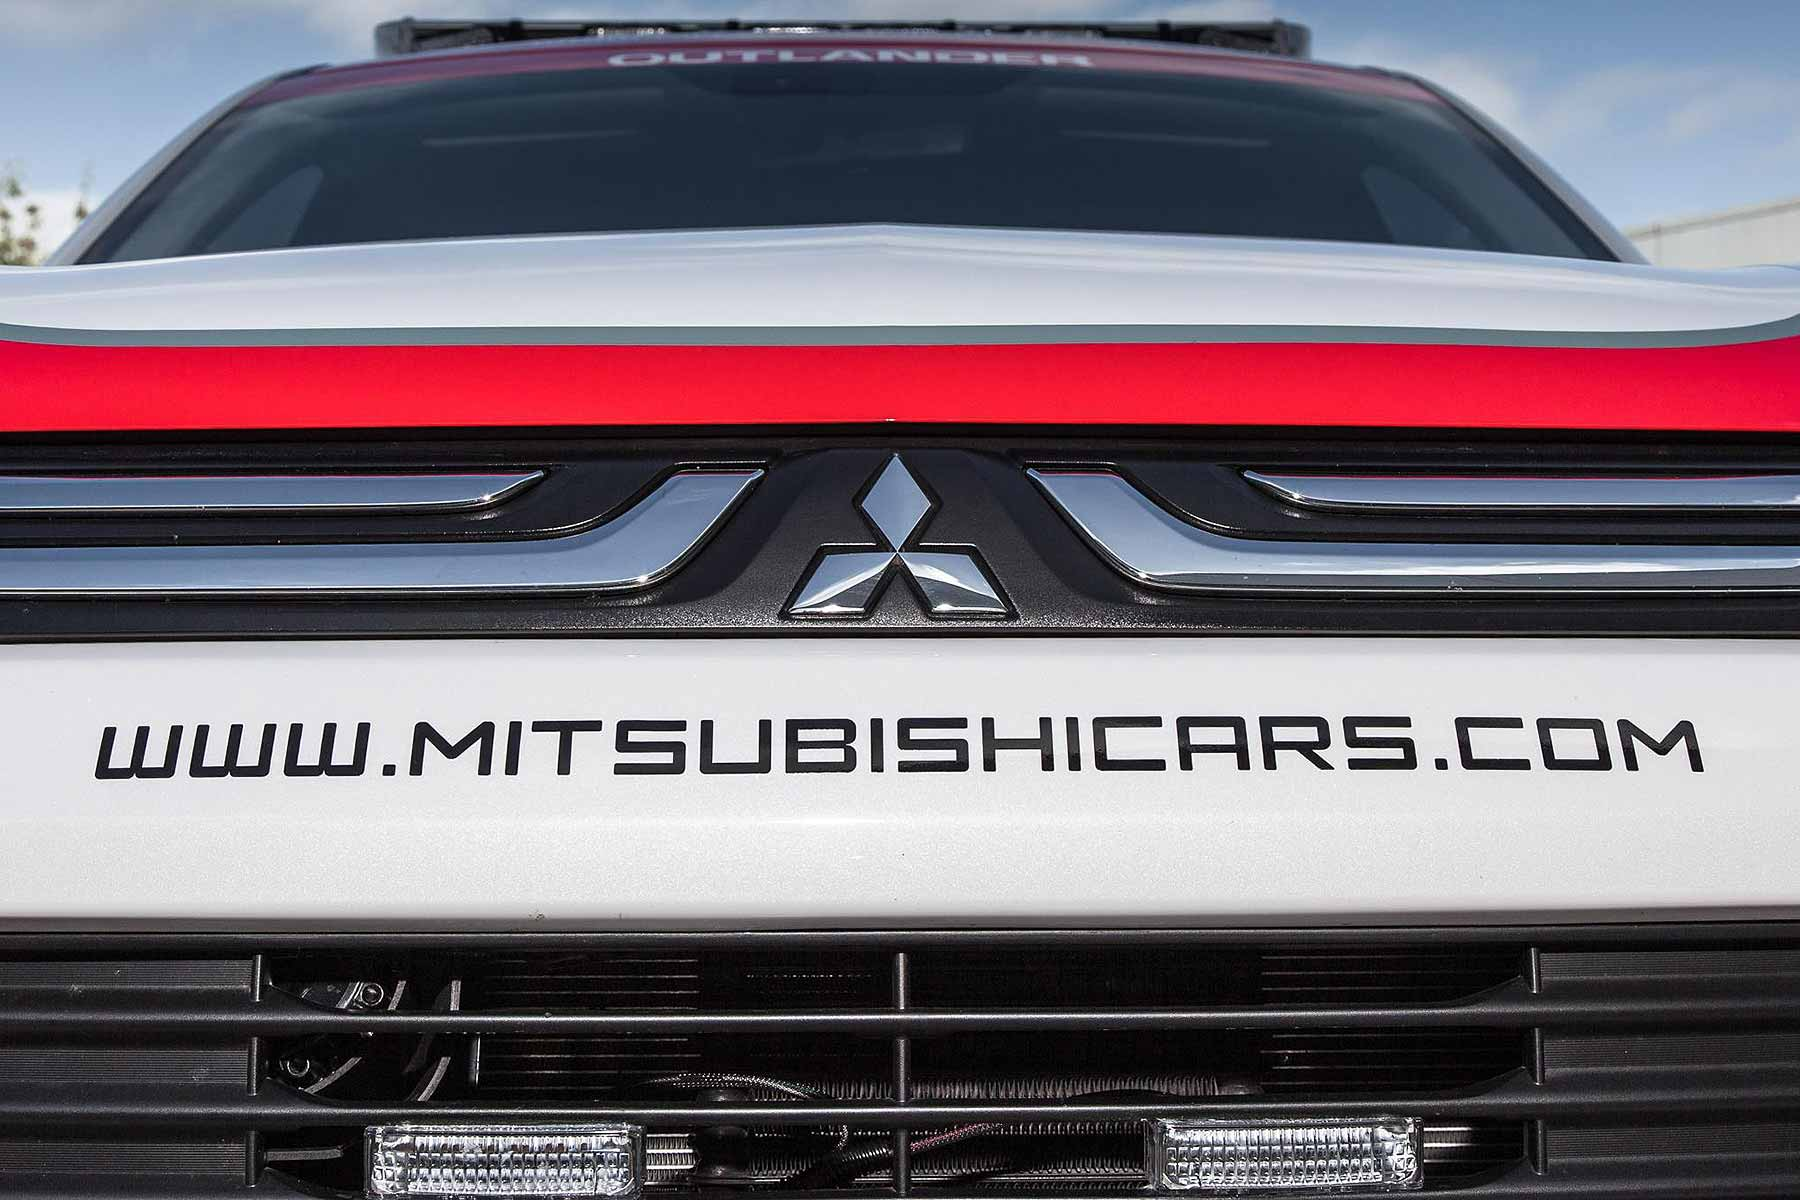 Mitsubishi Fuel Economy Test Scandal Q A Motoring Research